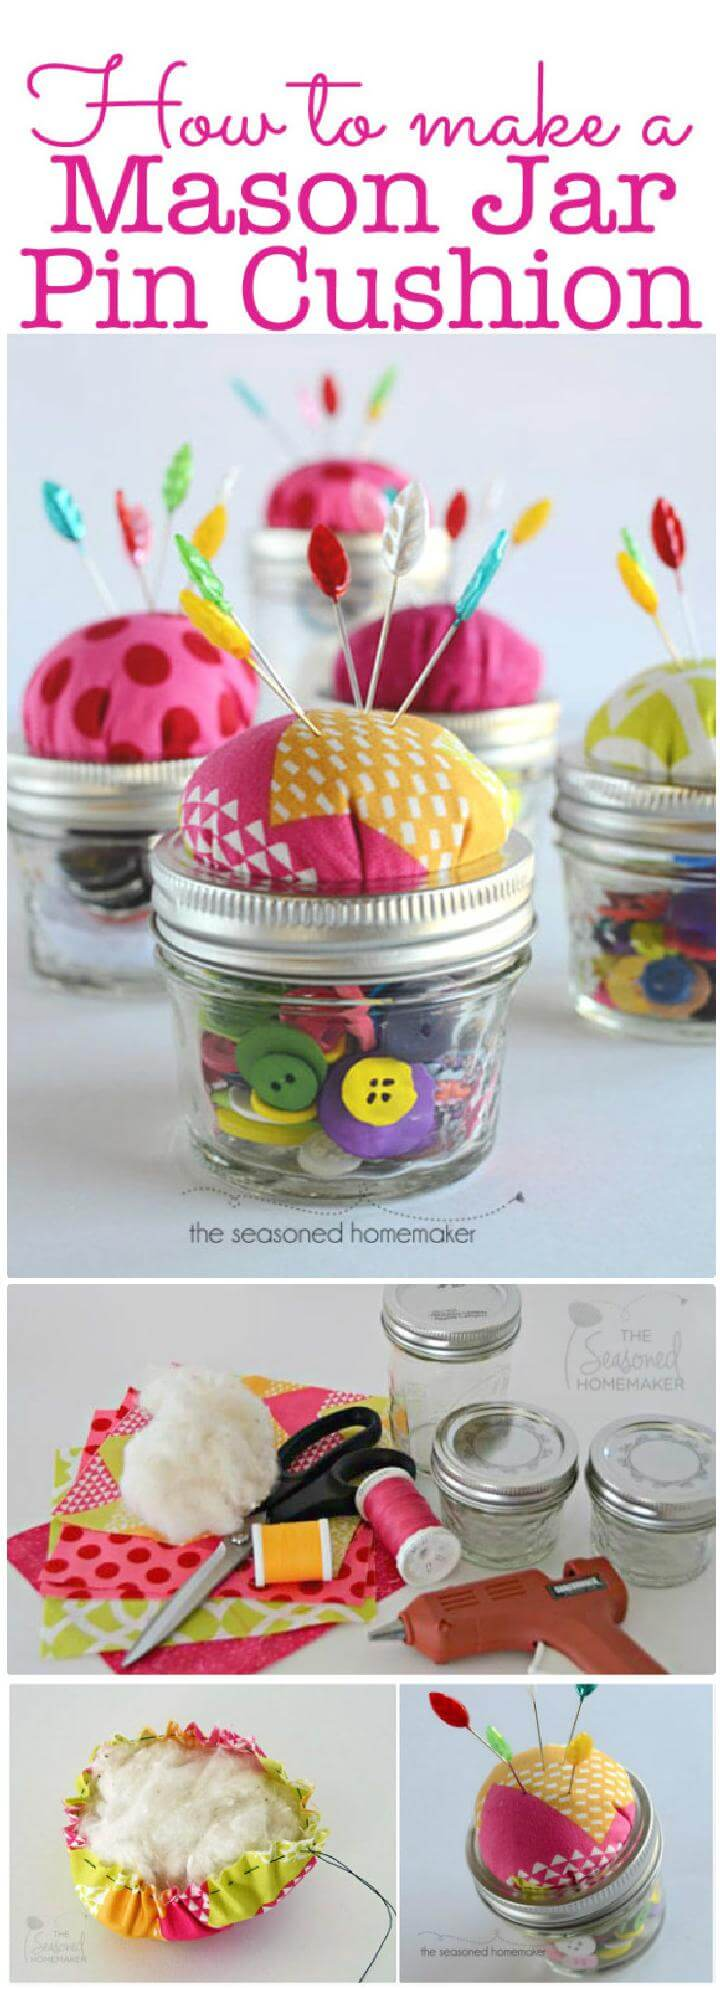 DIY Hand-Built Mason Jar Pin Cushion